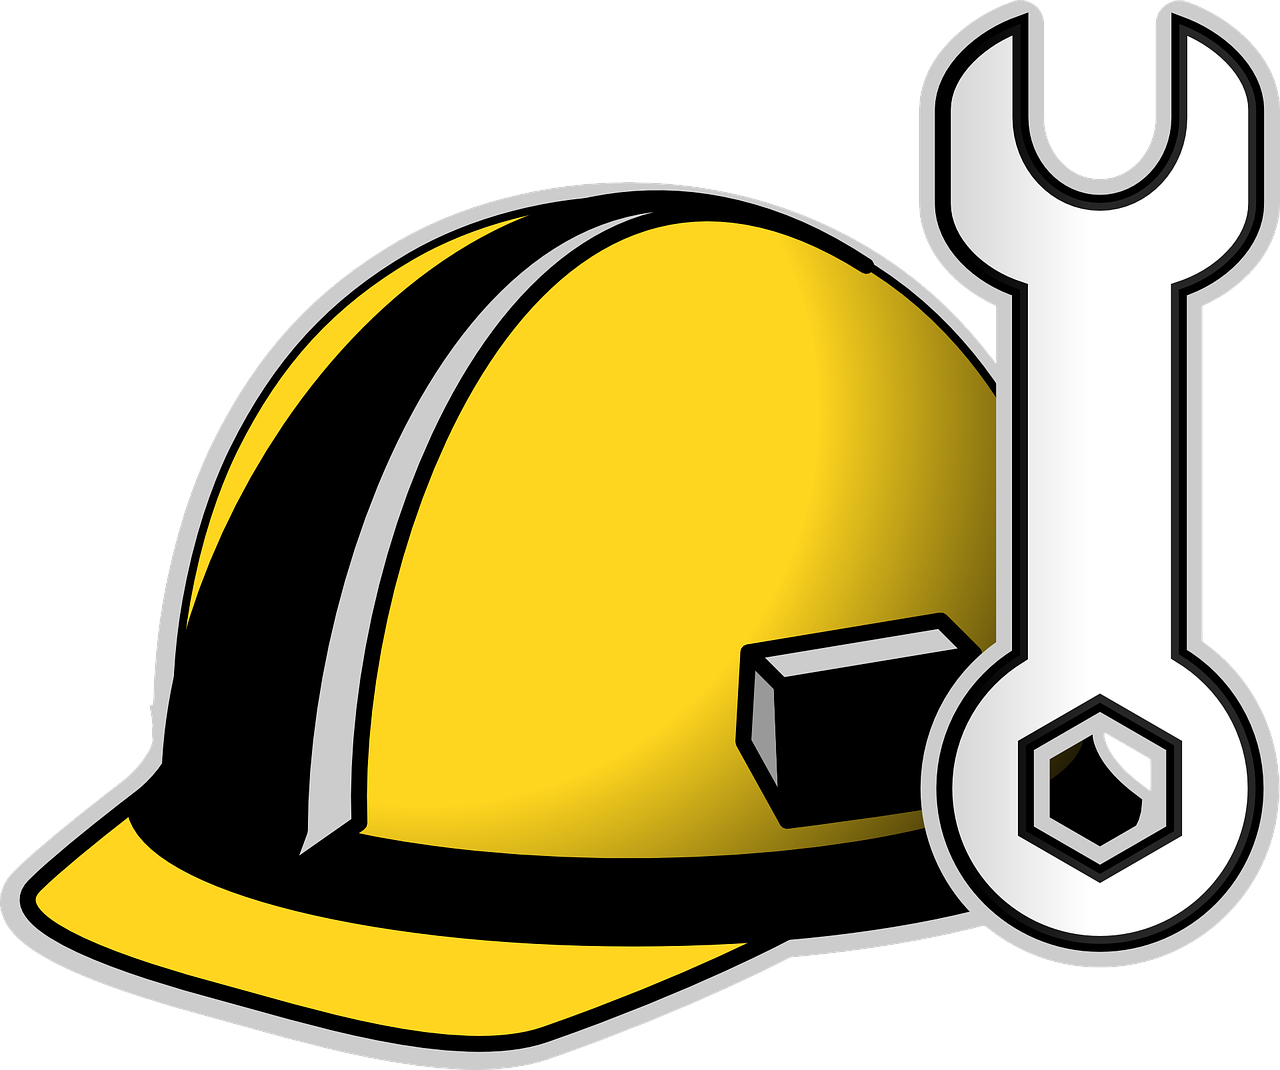 Helmet Engineer Hard Hat transparent image | Helmet | Pinterest ... banner transparent